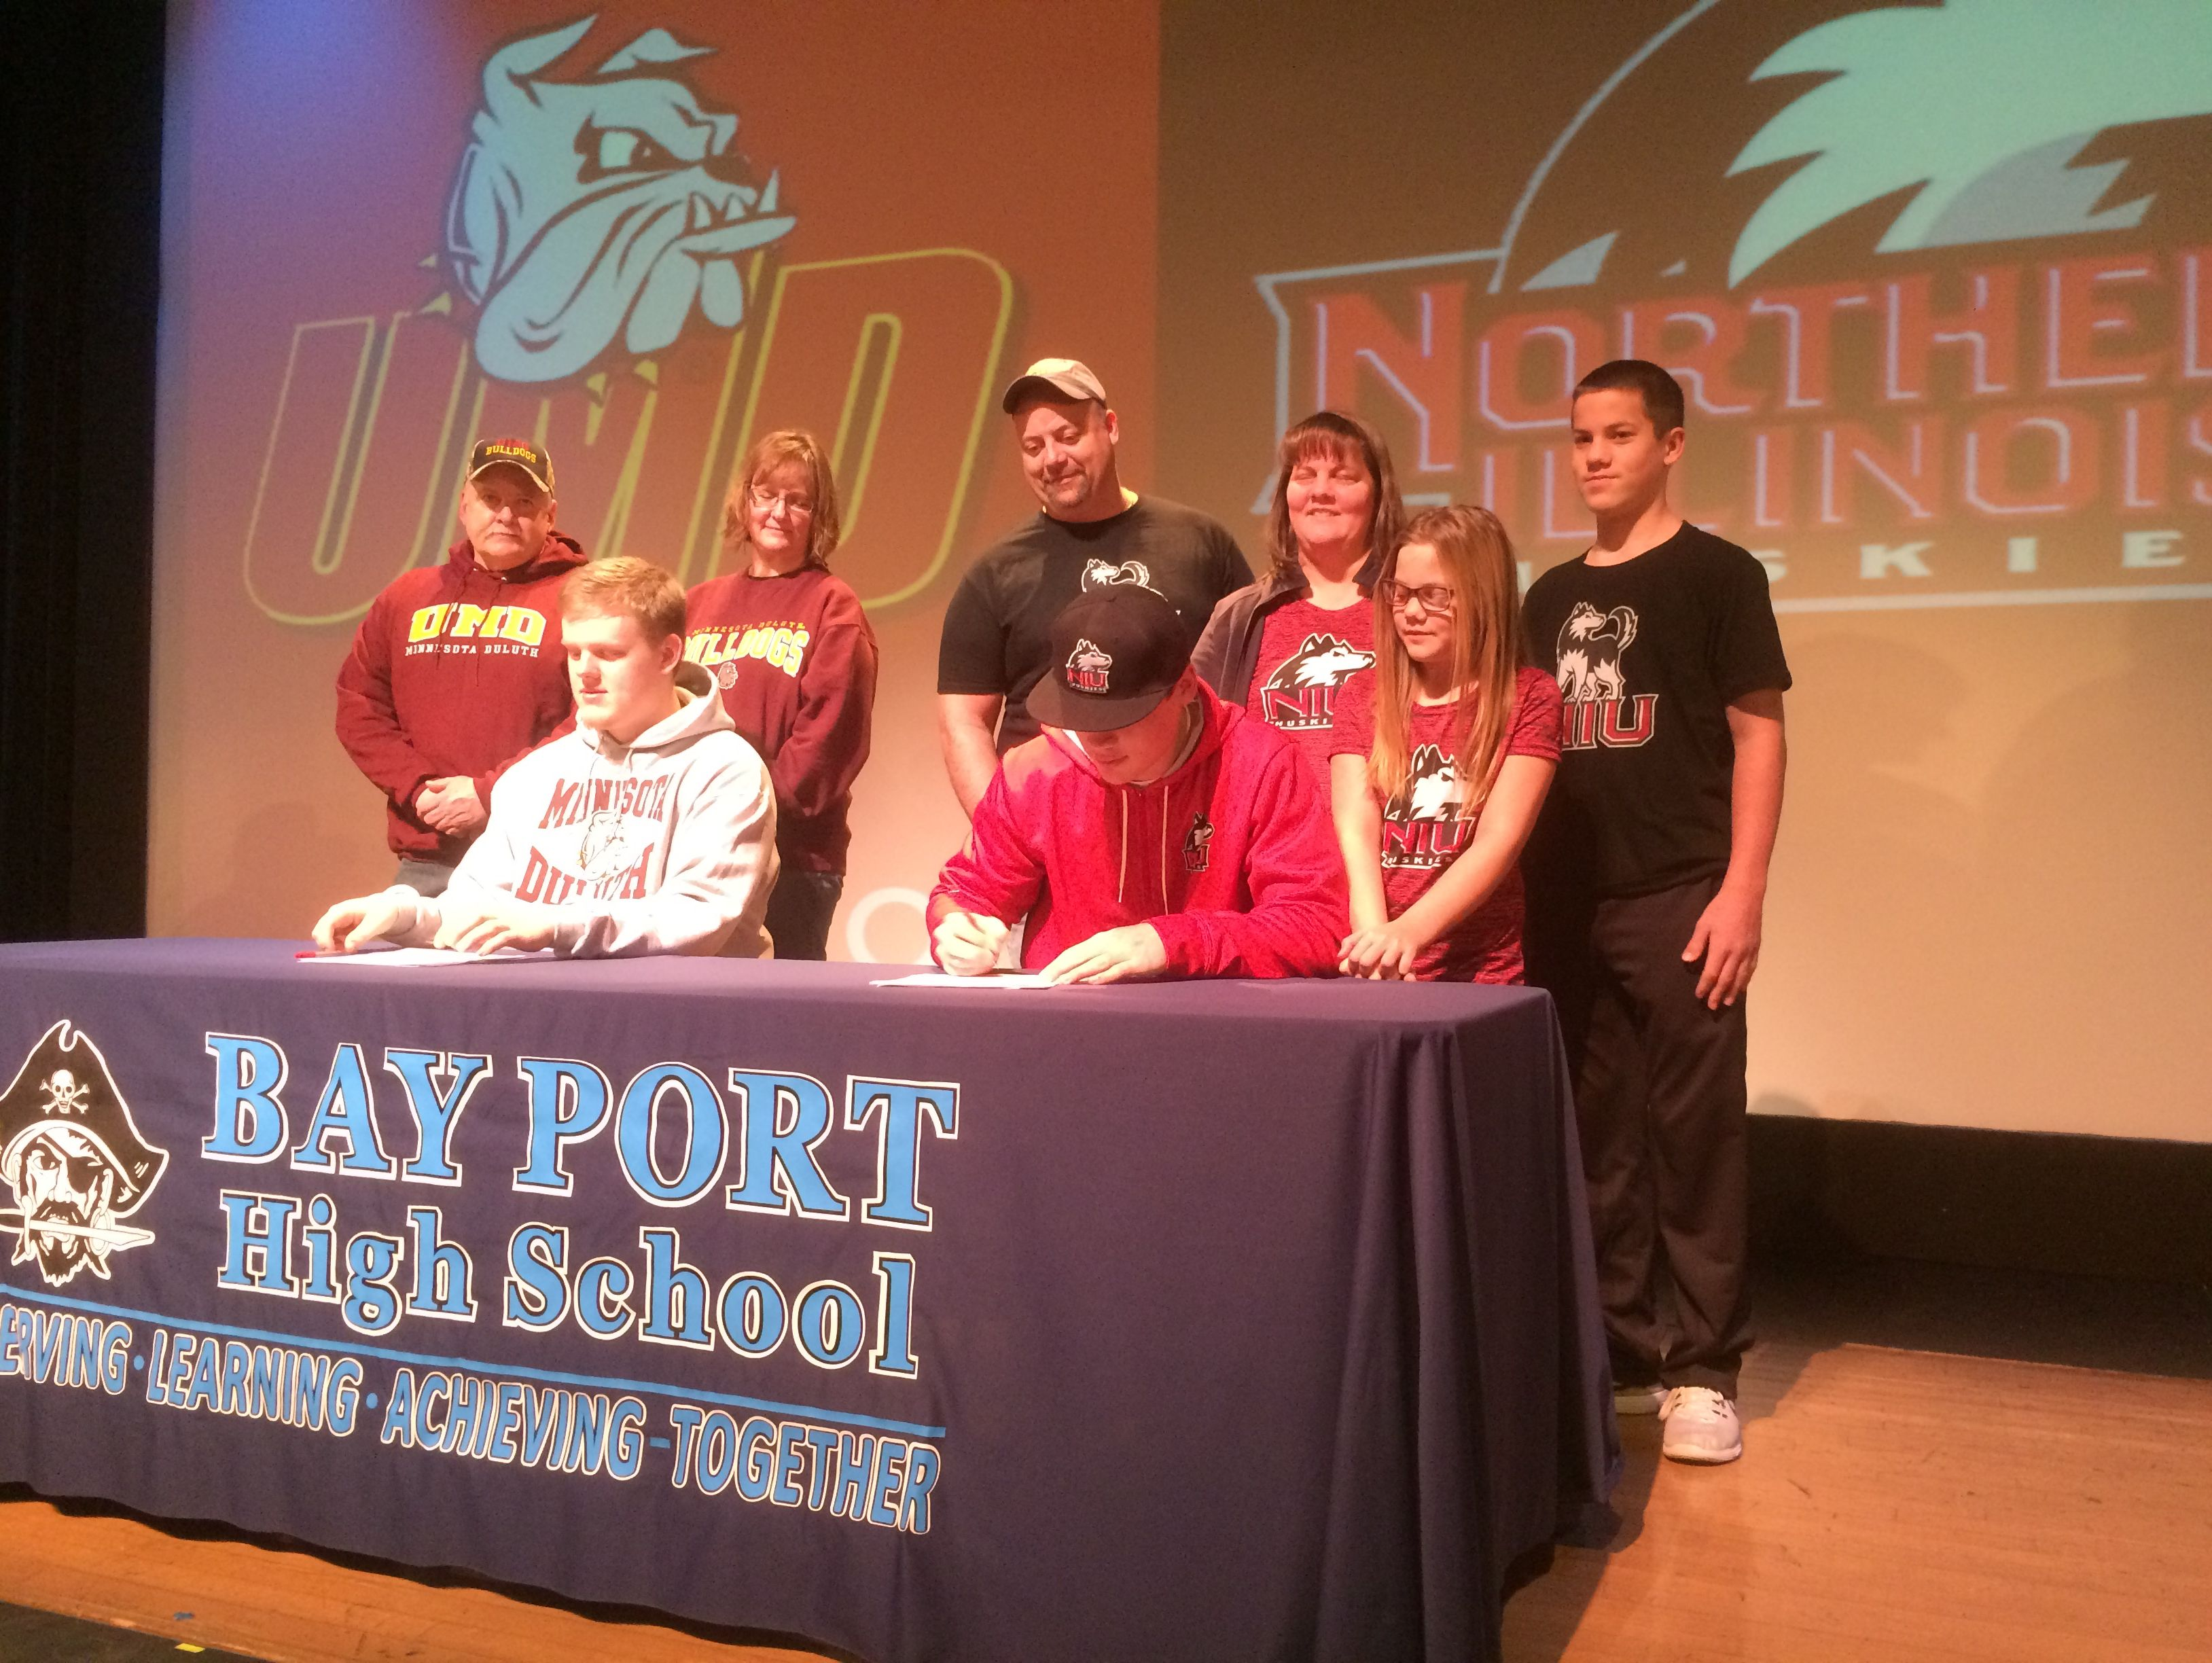 Bay Port seniors Matt Lorbeck (right) and Jake Hansen (left) sign national letters of intent on Wednesday with college football programs. Lorbeck signed with Northern Illinois University, while Hansen signed with Minnesota-Duluth.